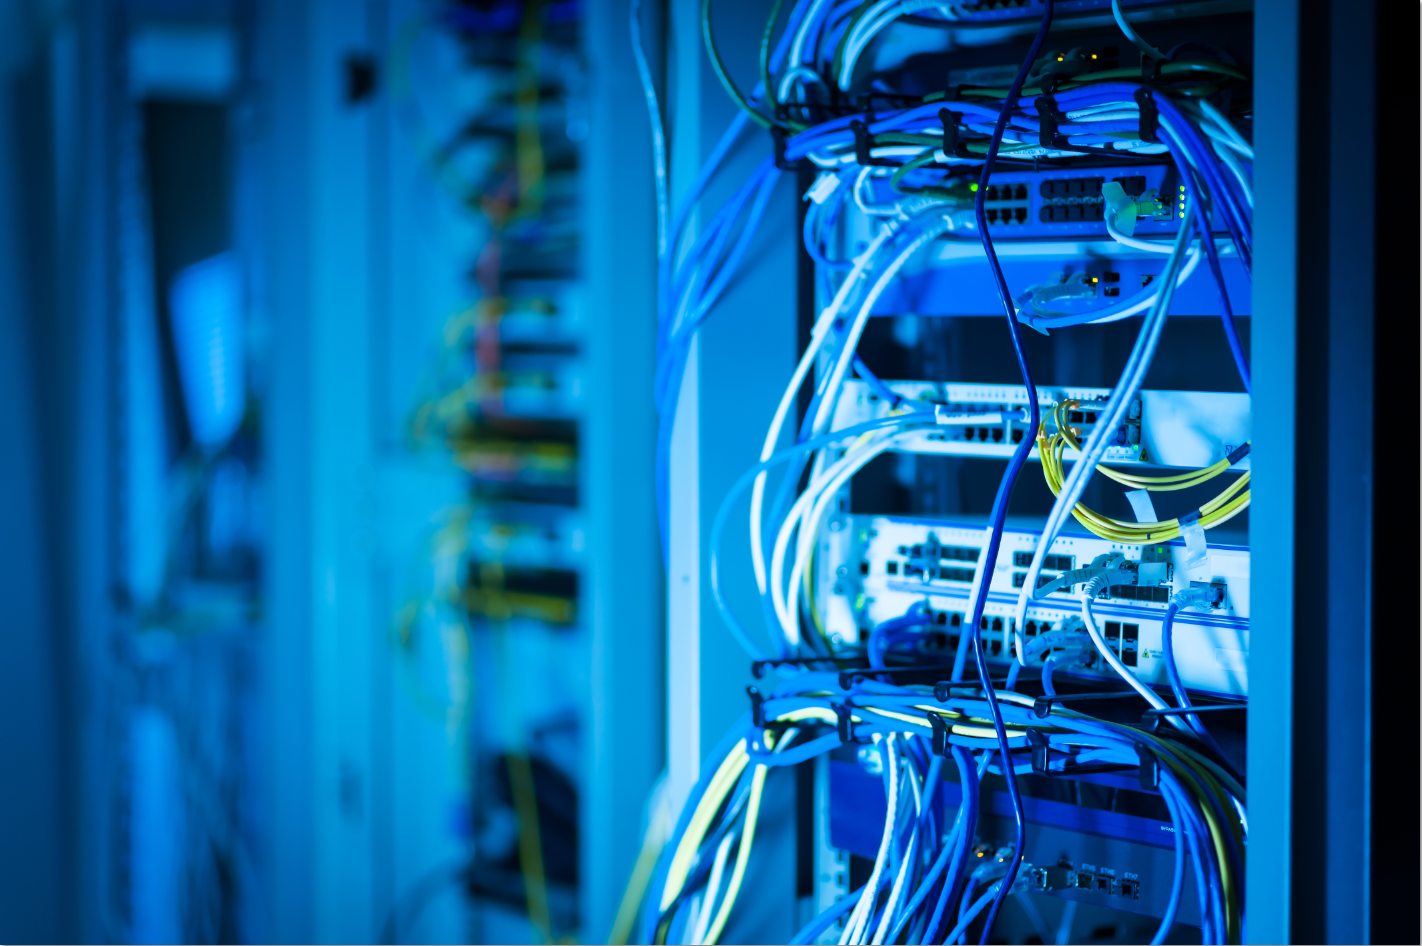 Business I.T. Network Cabling in Yorba Linda